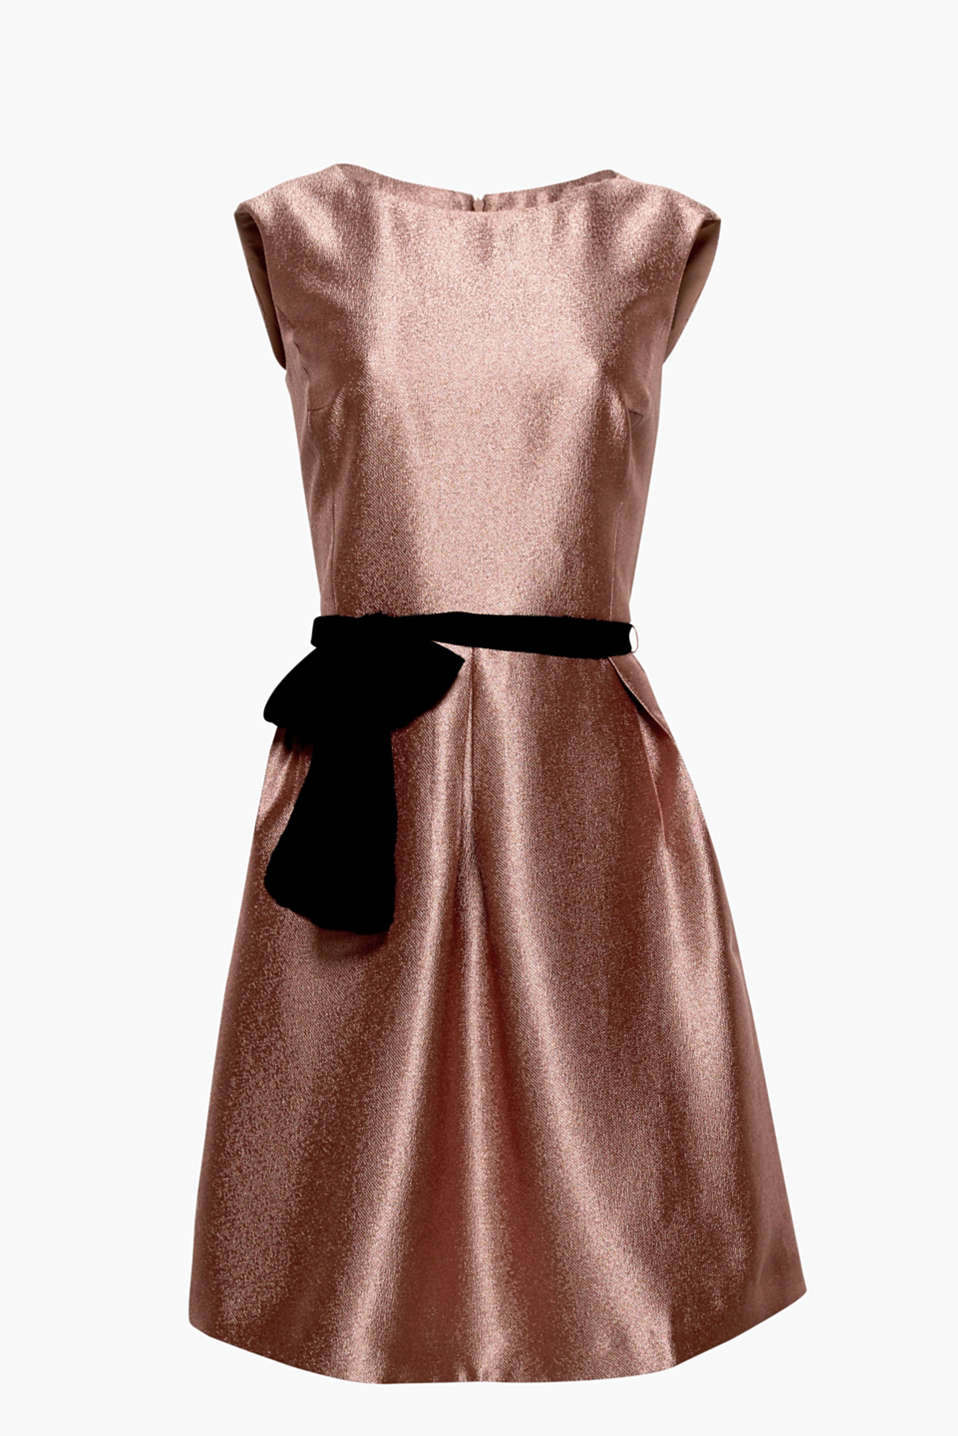 Smart and shiny: this dress guarantees a dazzling entrance with its ribbed texture, chiffon belt and pleated skirt!